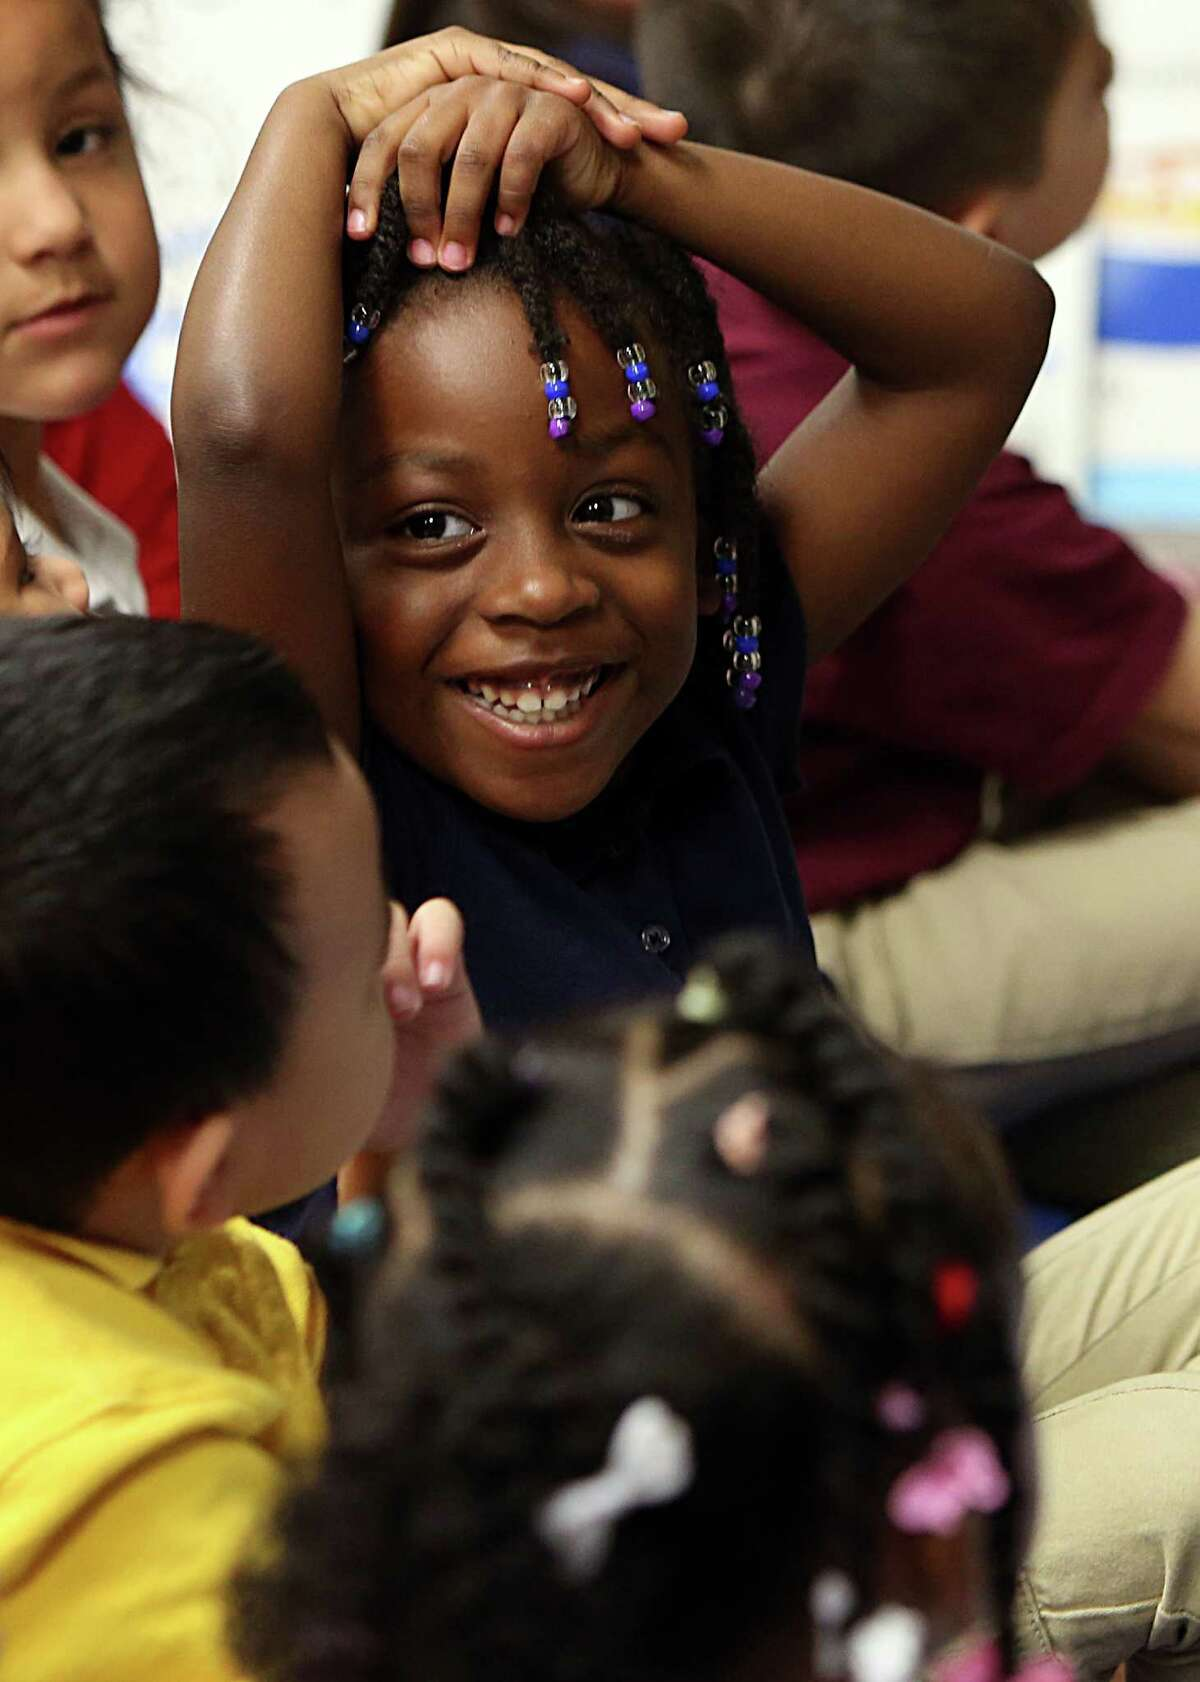 Trinidy Taylor, 4, smiles at teacher Lisa Joe during a morning pre-kindergarten lesson at Liestman Elementary School on Wednesday, Sept. 24, 2014, in Houston. A coalition of educators, business and civic leaders called Early Matters is pushing to expand high-quality, full-day pre-kindergarten for 4 year-olds in the greater Houston area. Alief ISD only offers half-day pre-kindergarten.